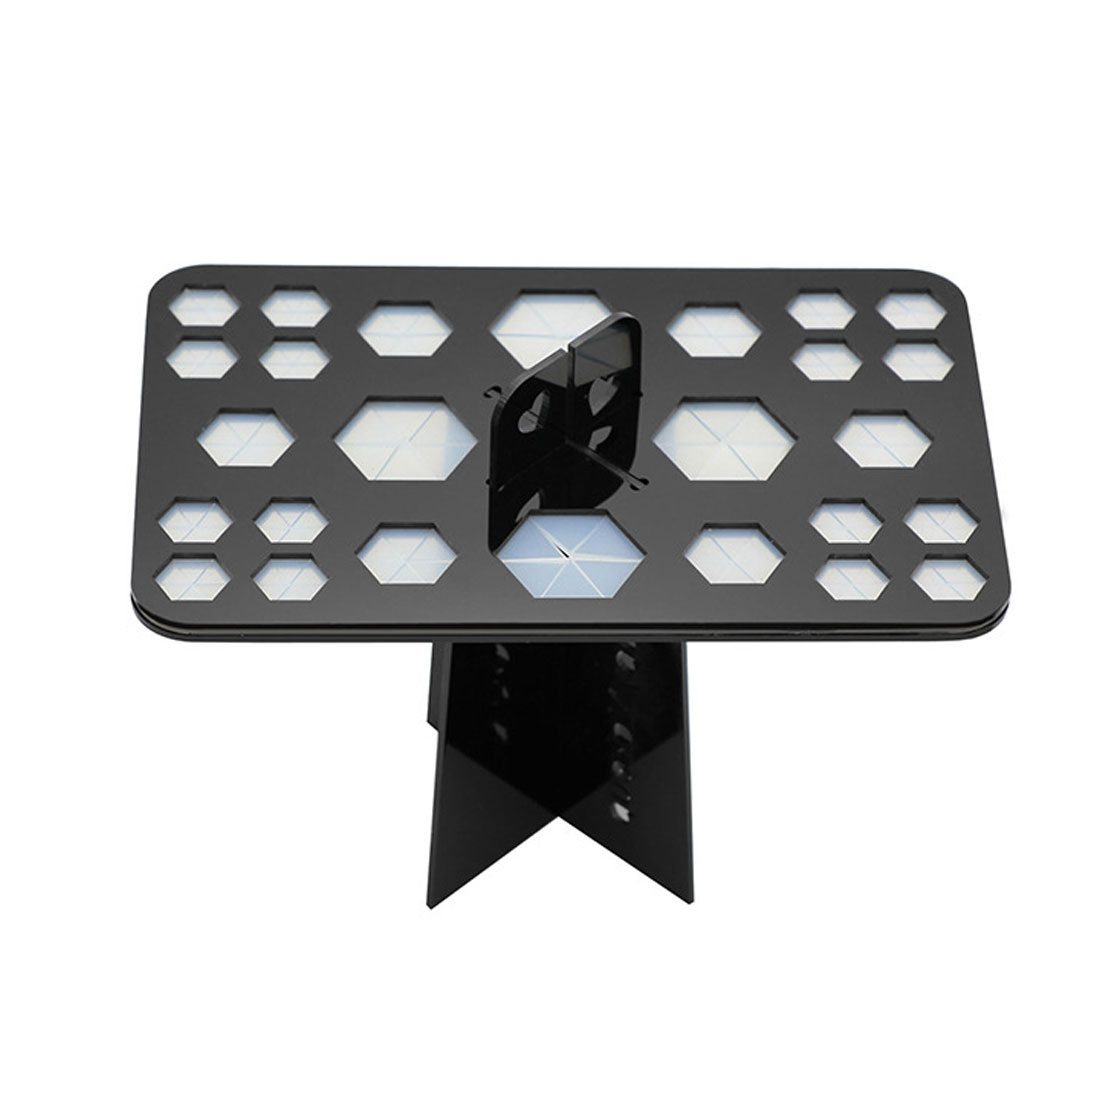 Black Acrylic 26 Hole Brushes Holder Drying Rack Cosmetic Display Shelf